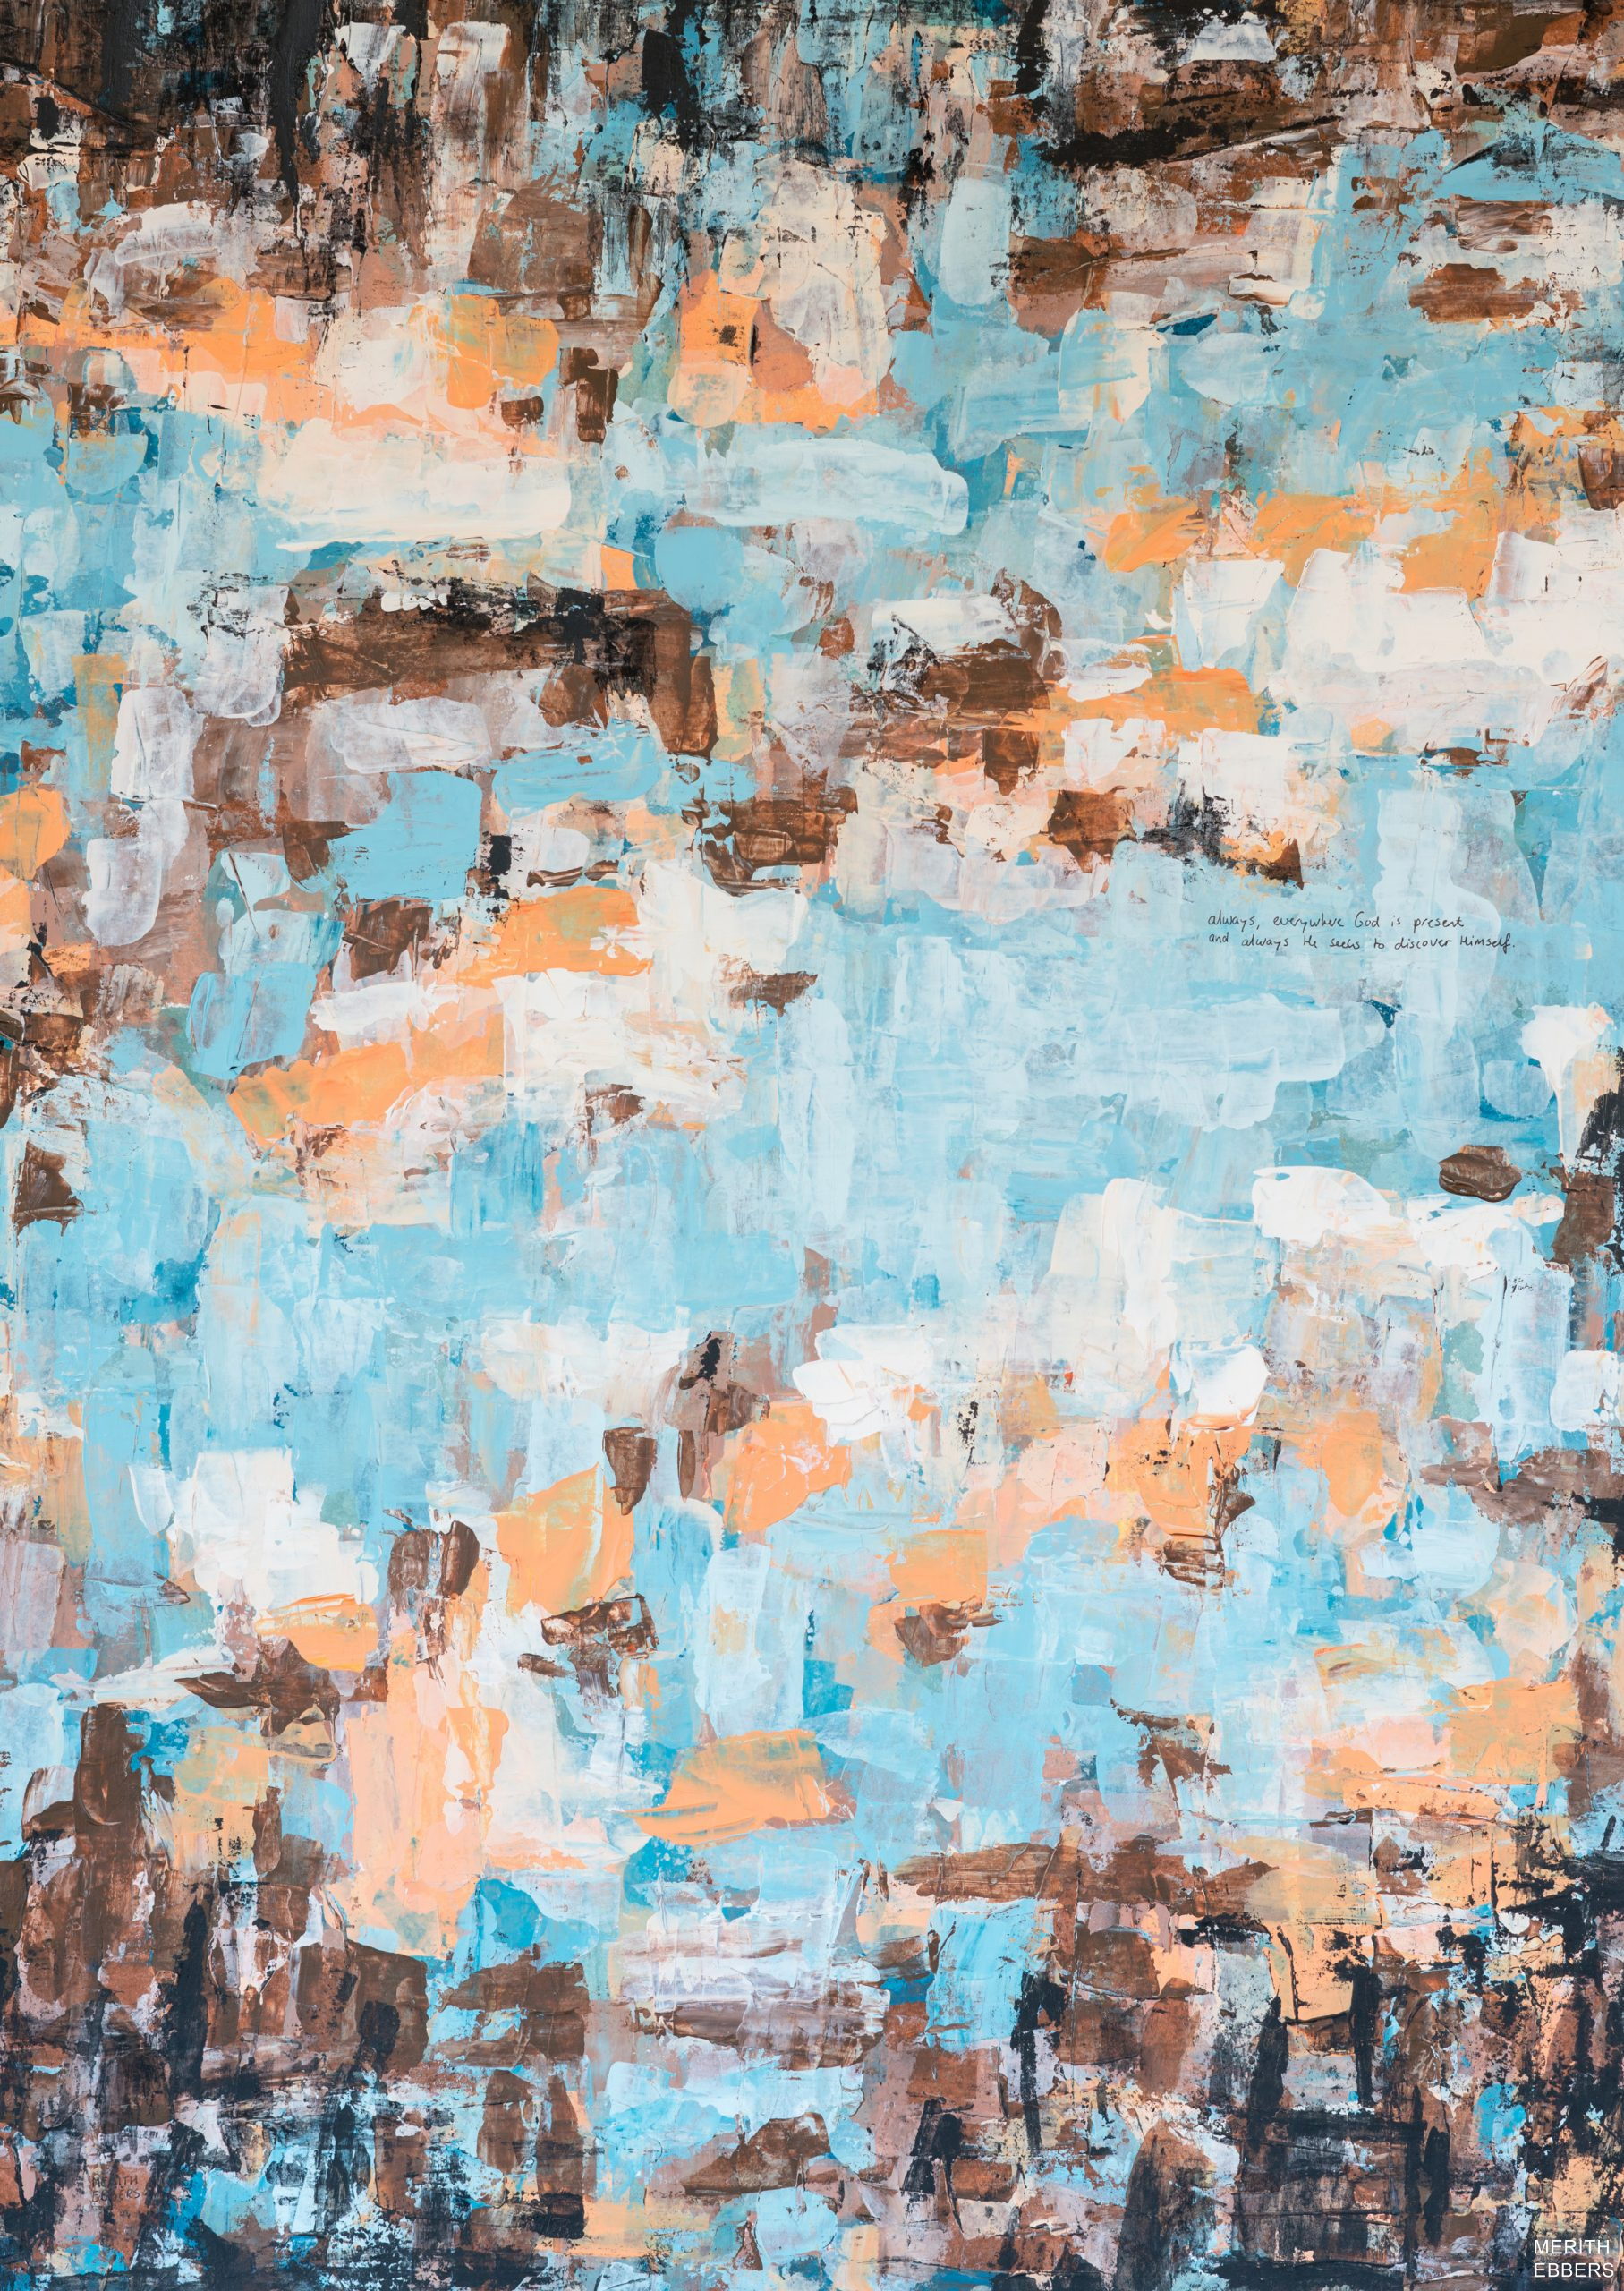 A painting of an abstract sunset in brown, orange and blue colors